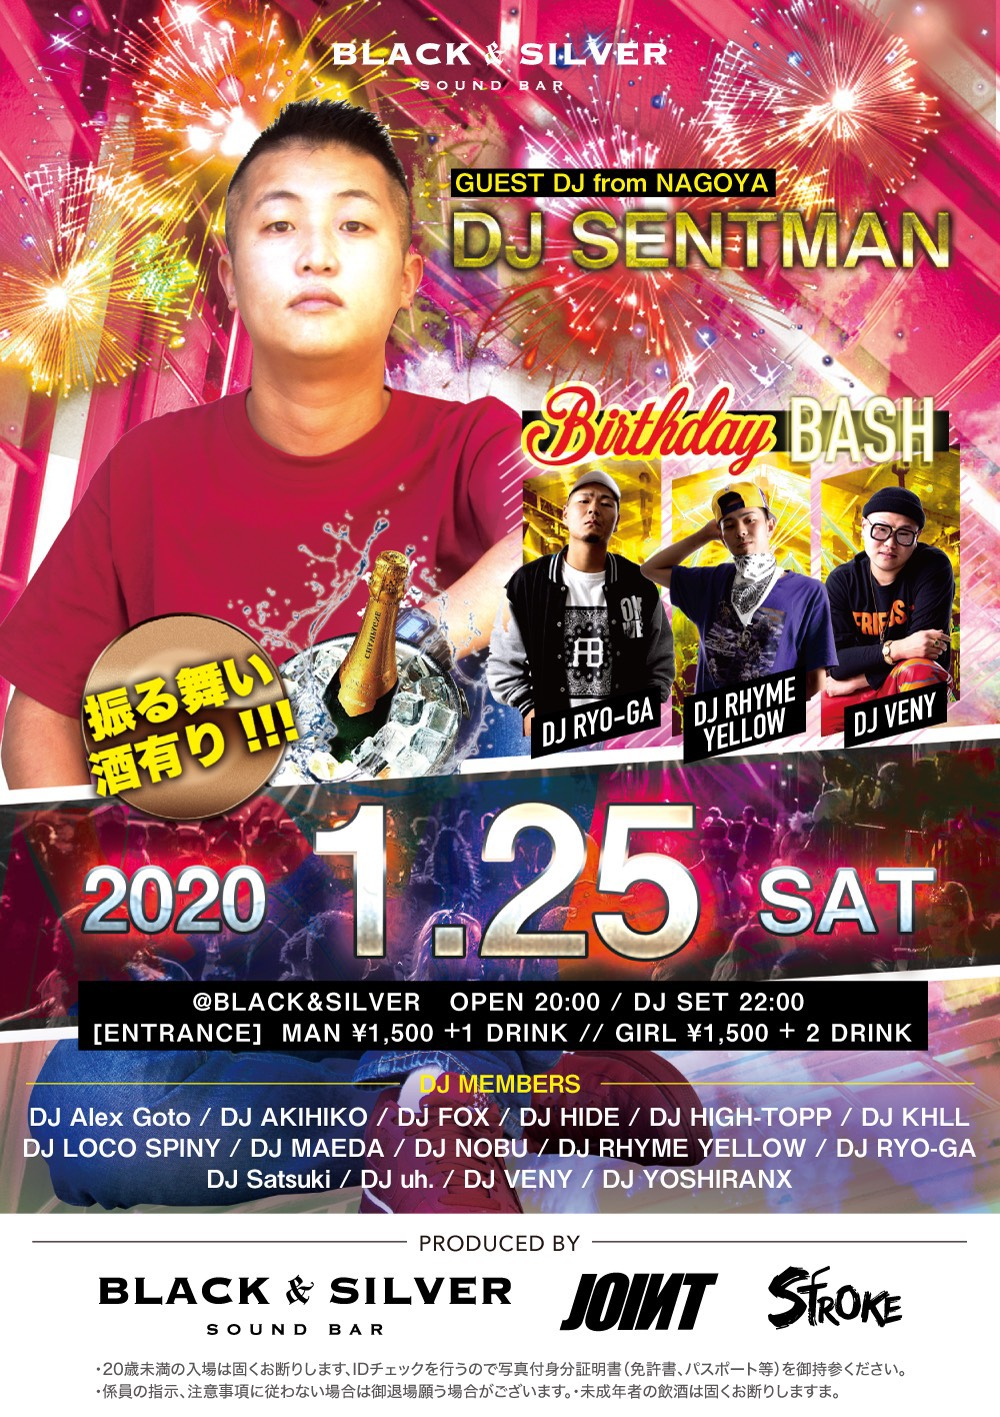 JOINT×STROKE Special Birthday Bash(1/25)